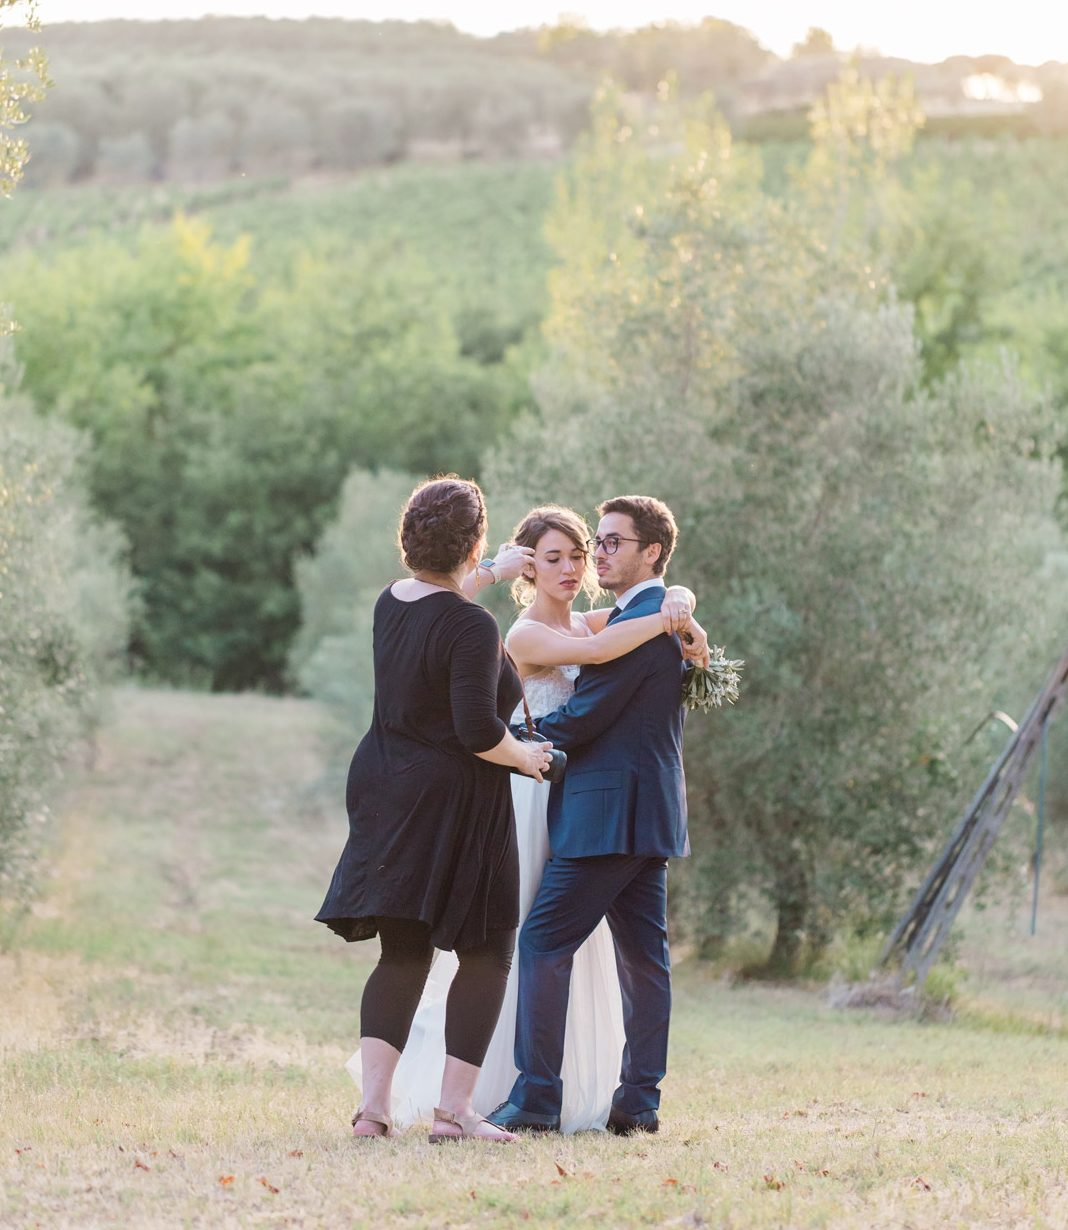 Melissa Brewer Photography working with bride and groom on posing in Tuscan olive orchard and vineyards in Cortona Italy destination wedding photographer